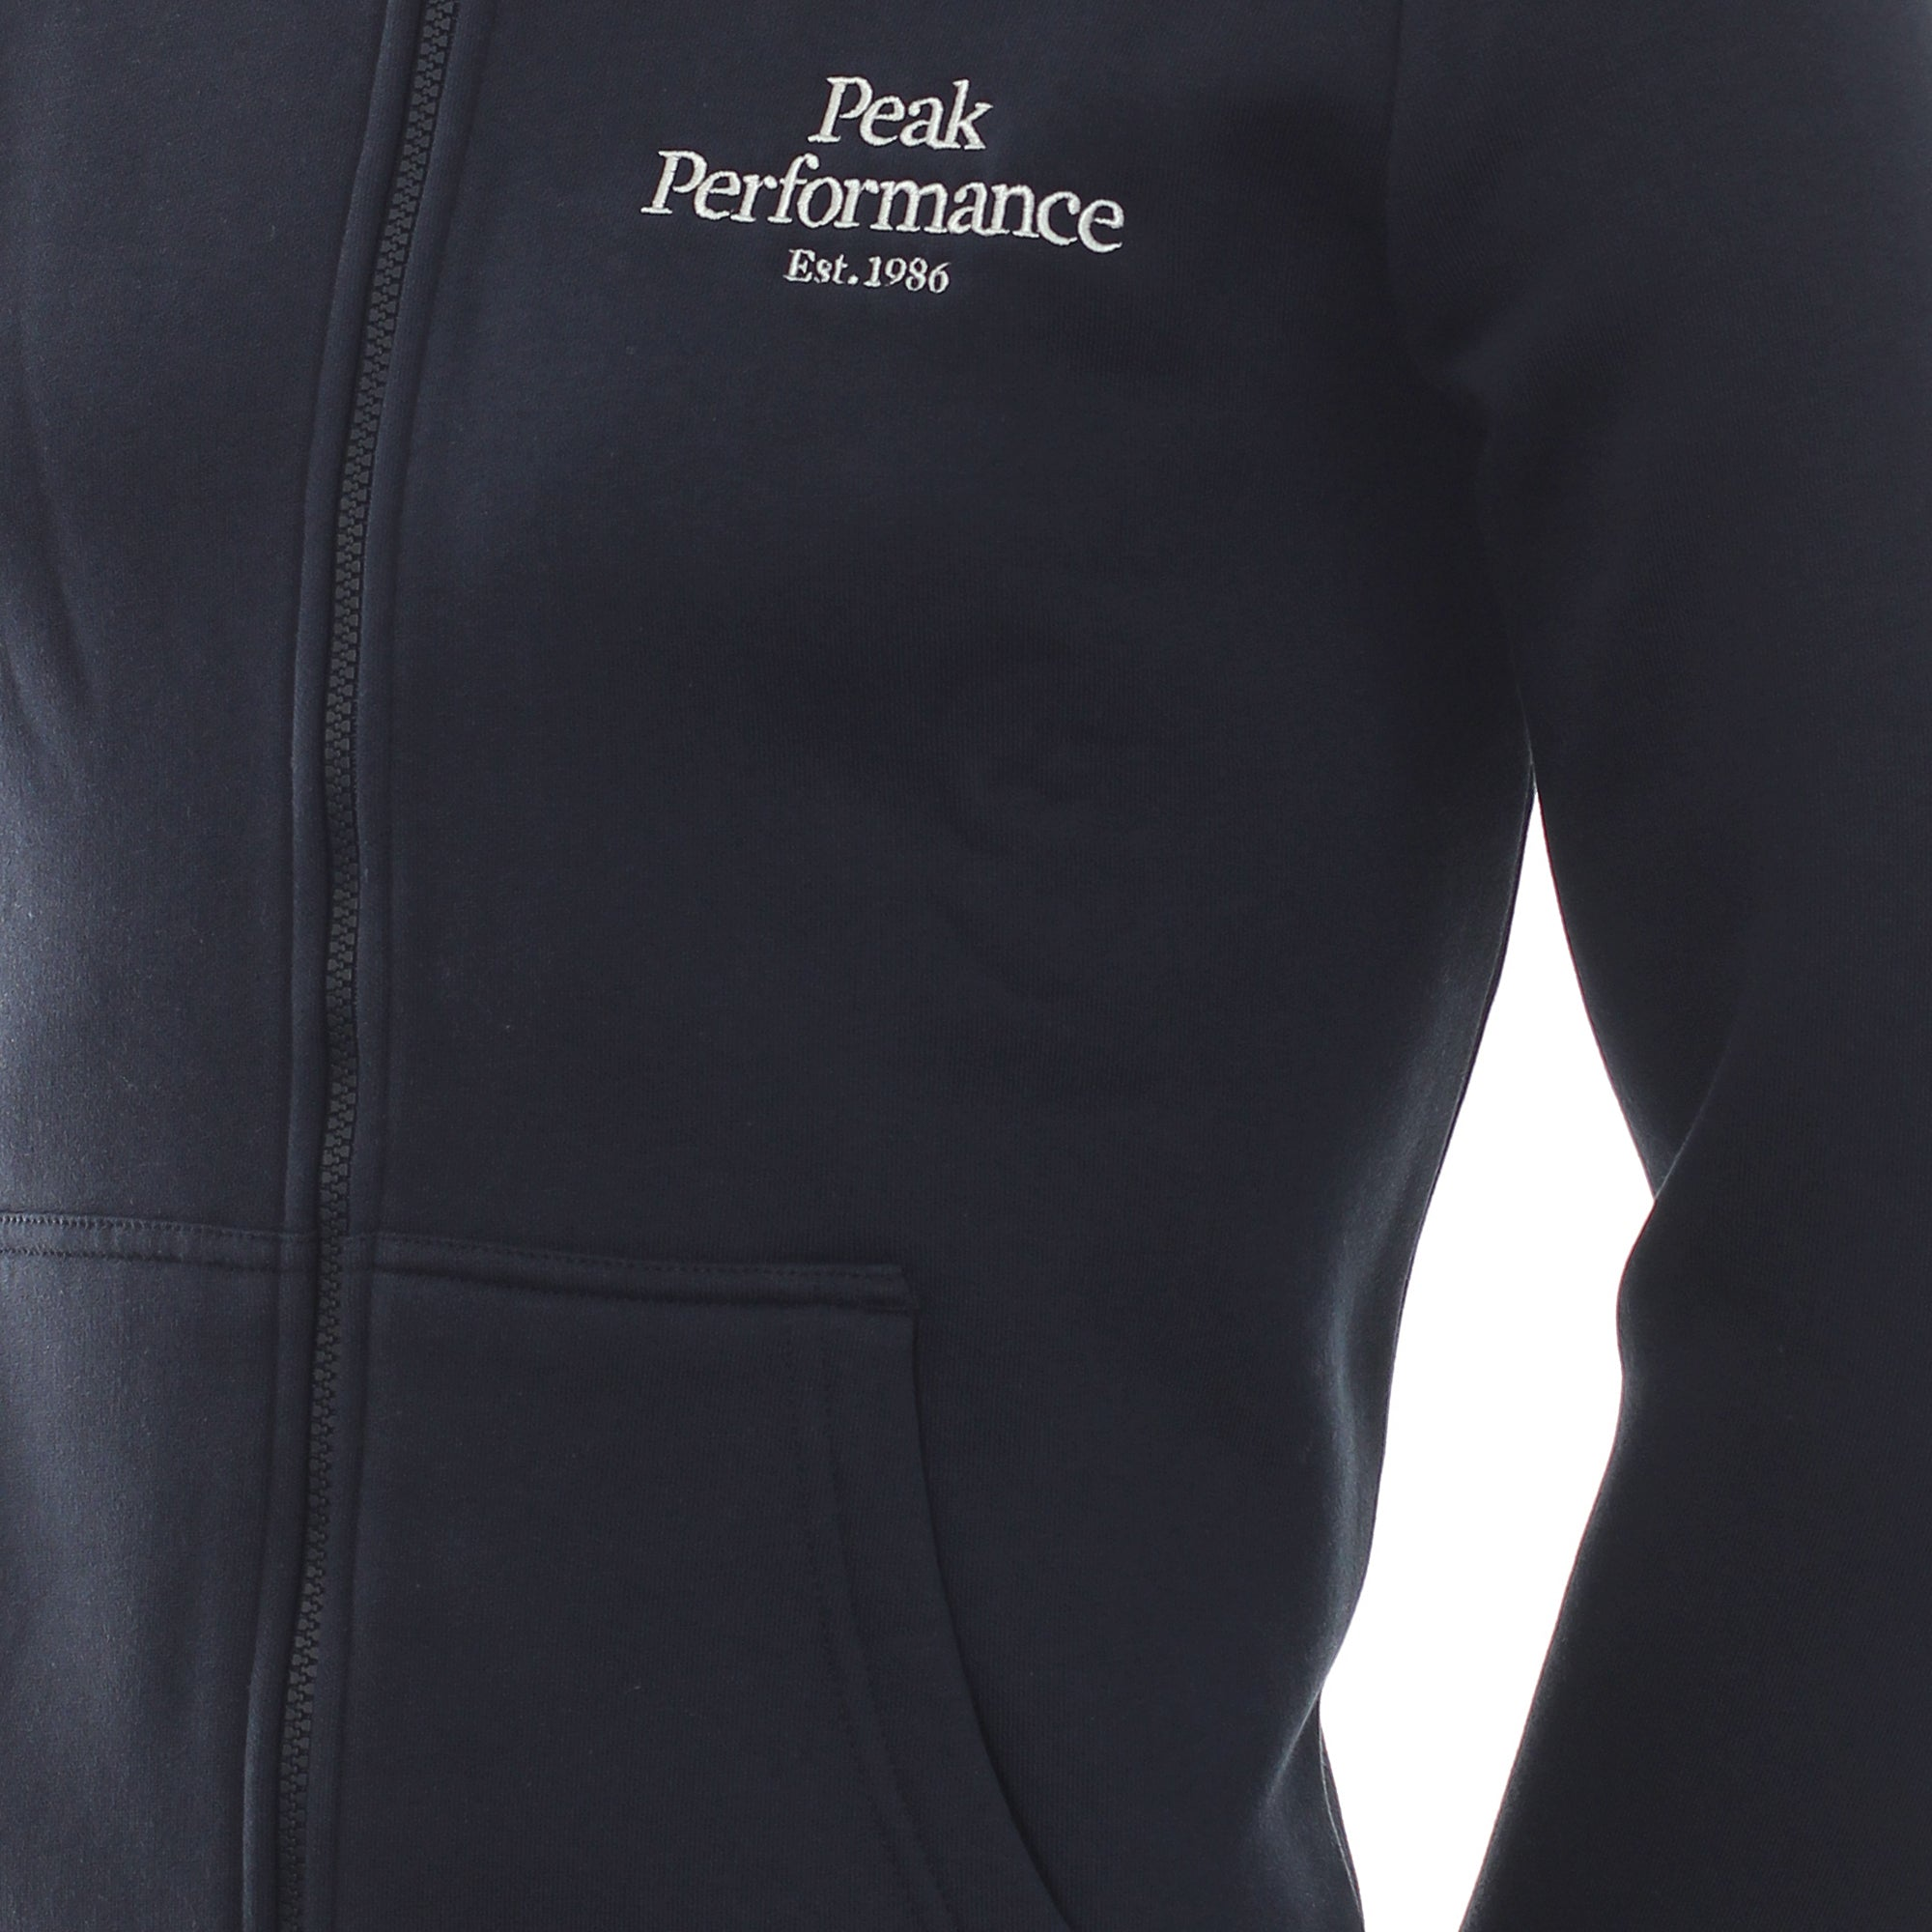 Peak Performance Original Zip Jacket